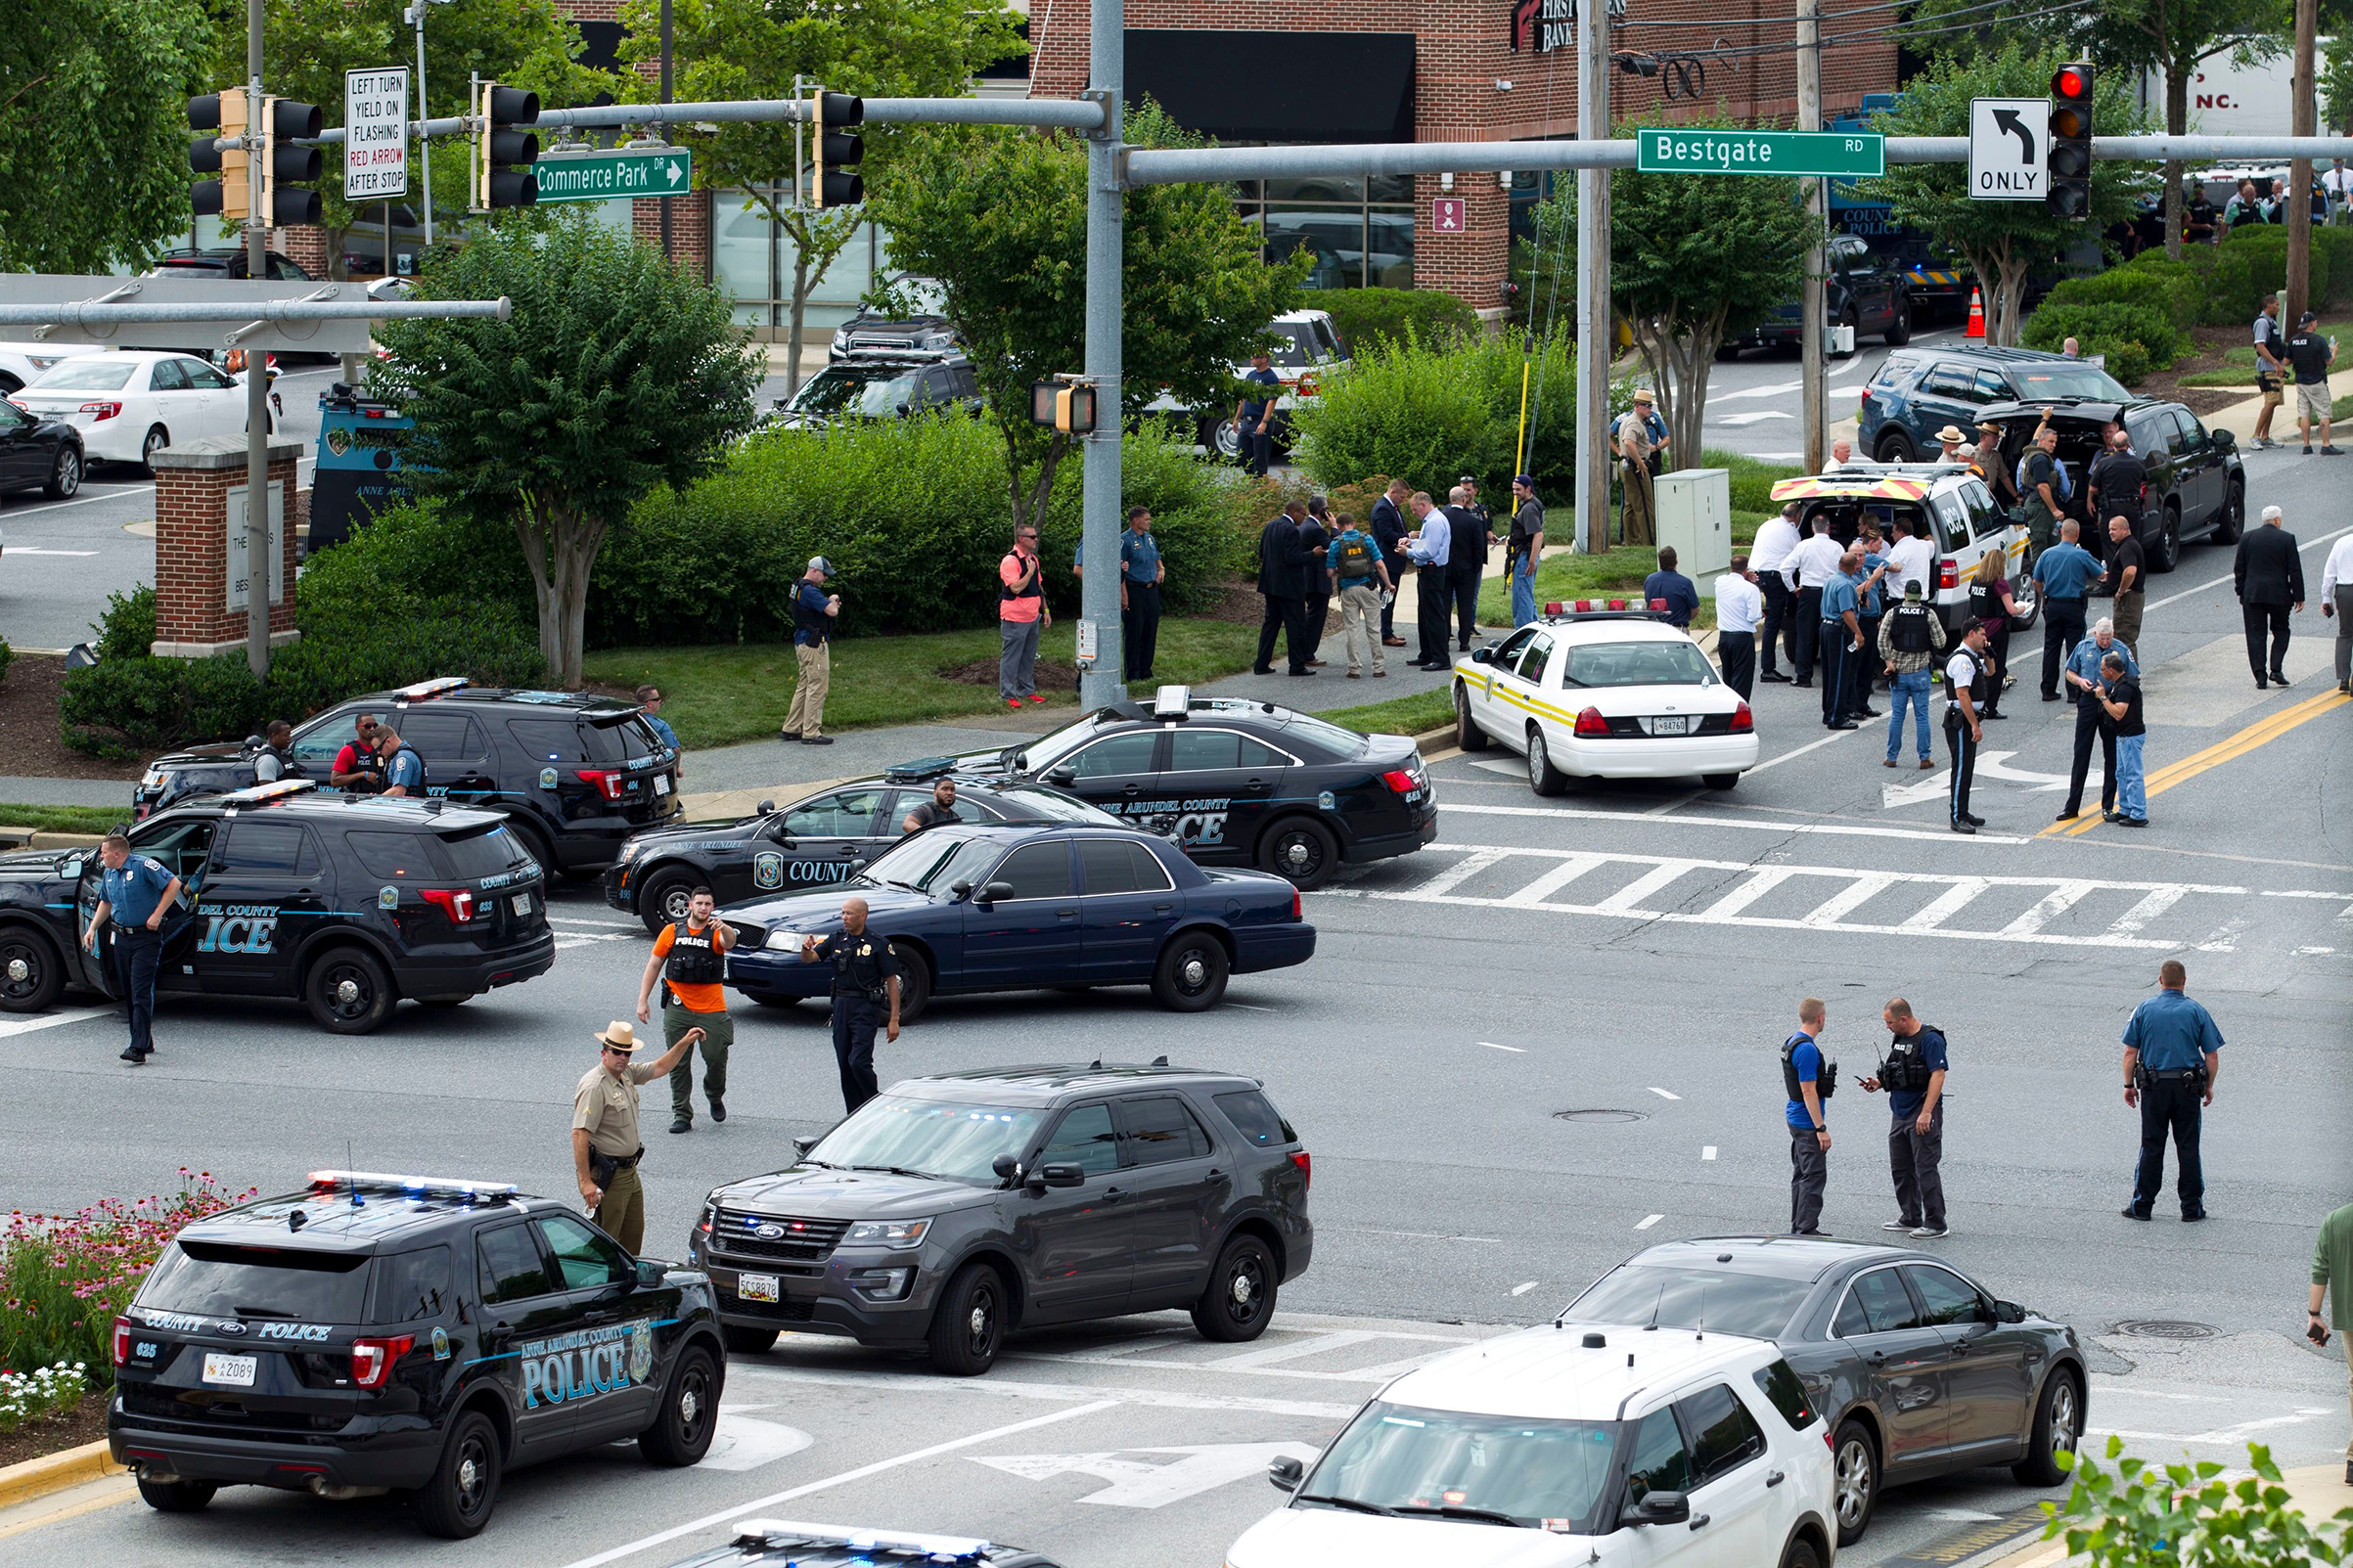 Maryland police officers block the intersection at the building entrance, after multiple people were shot at a newspaper in Annapolis, Md on June 28, 2018.